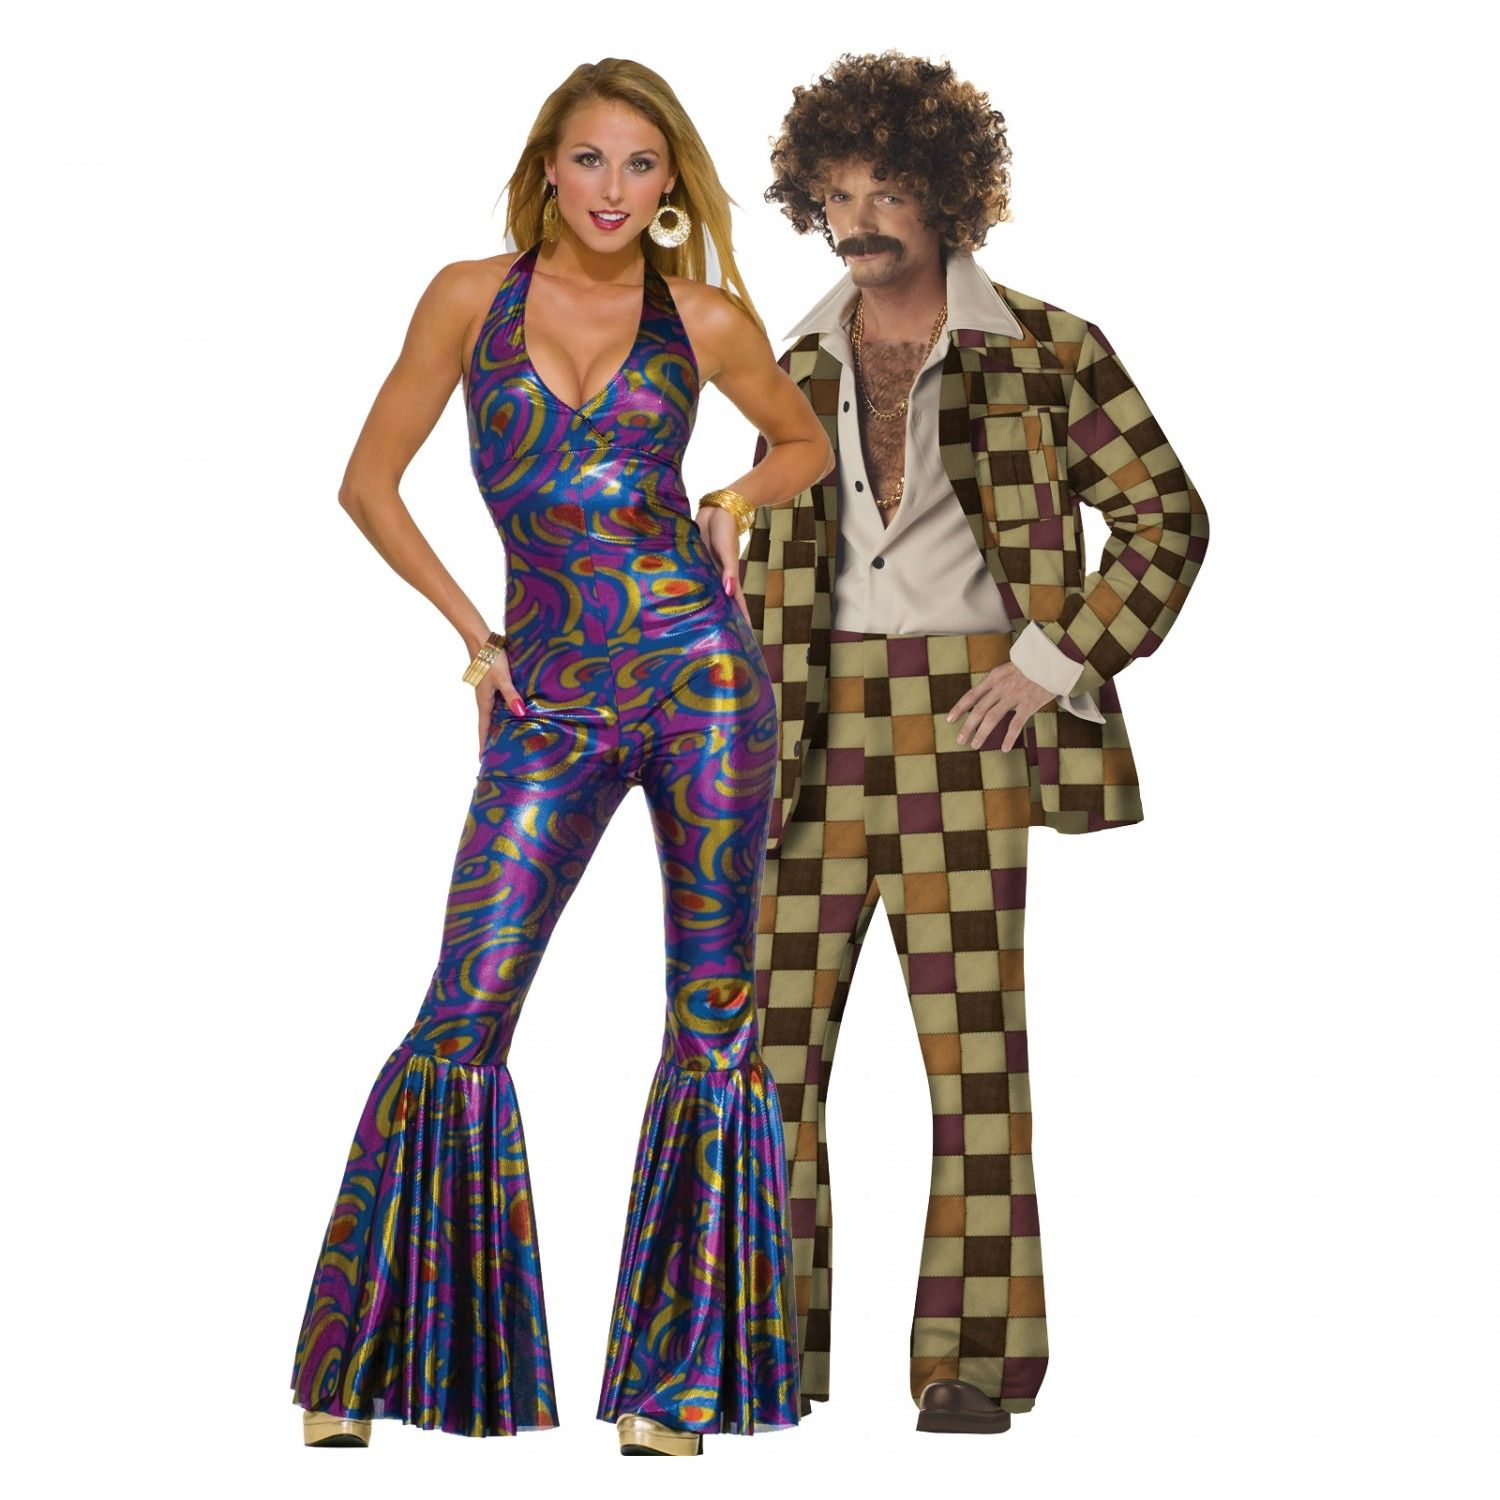 images of the 70u0027s | Disco Diva and Funky 70u0027s Couples Costume Image  sc 1 st  Pinterest & images of the 70u0027s | Disco Diva and Funky 70u0027s Couples Costume Image ...